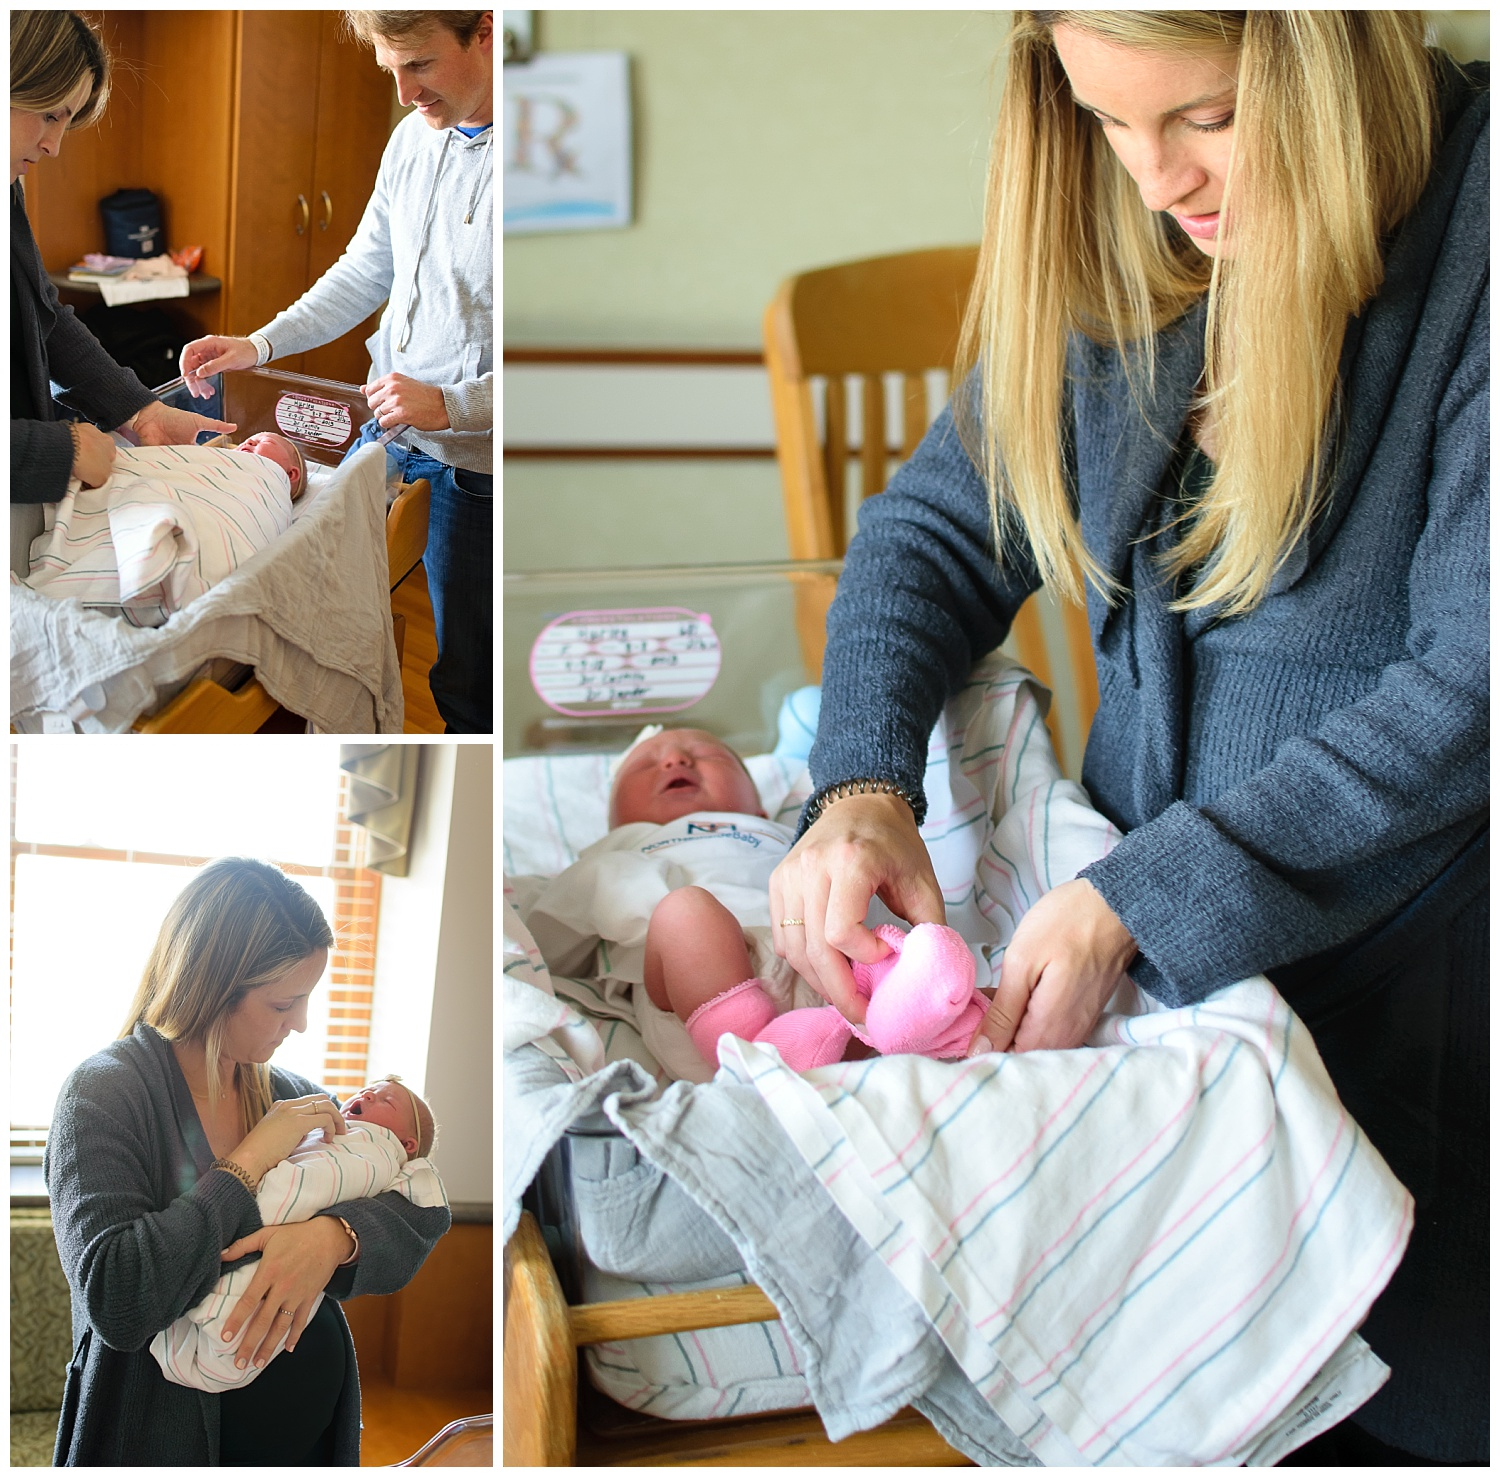 these are images of a mother dressing her newborn baby girl in the hospital room during a fresh 48 newborn session